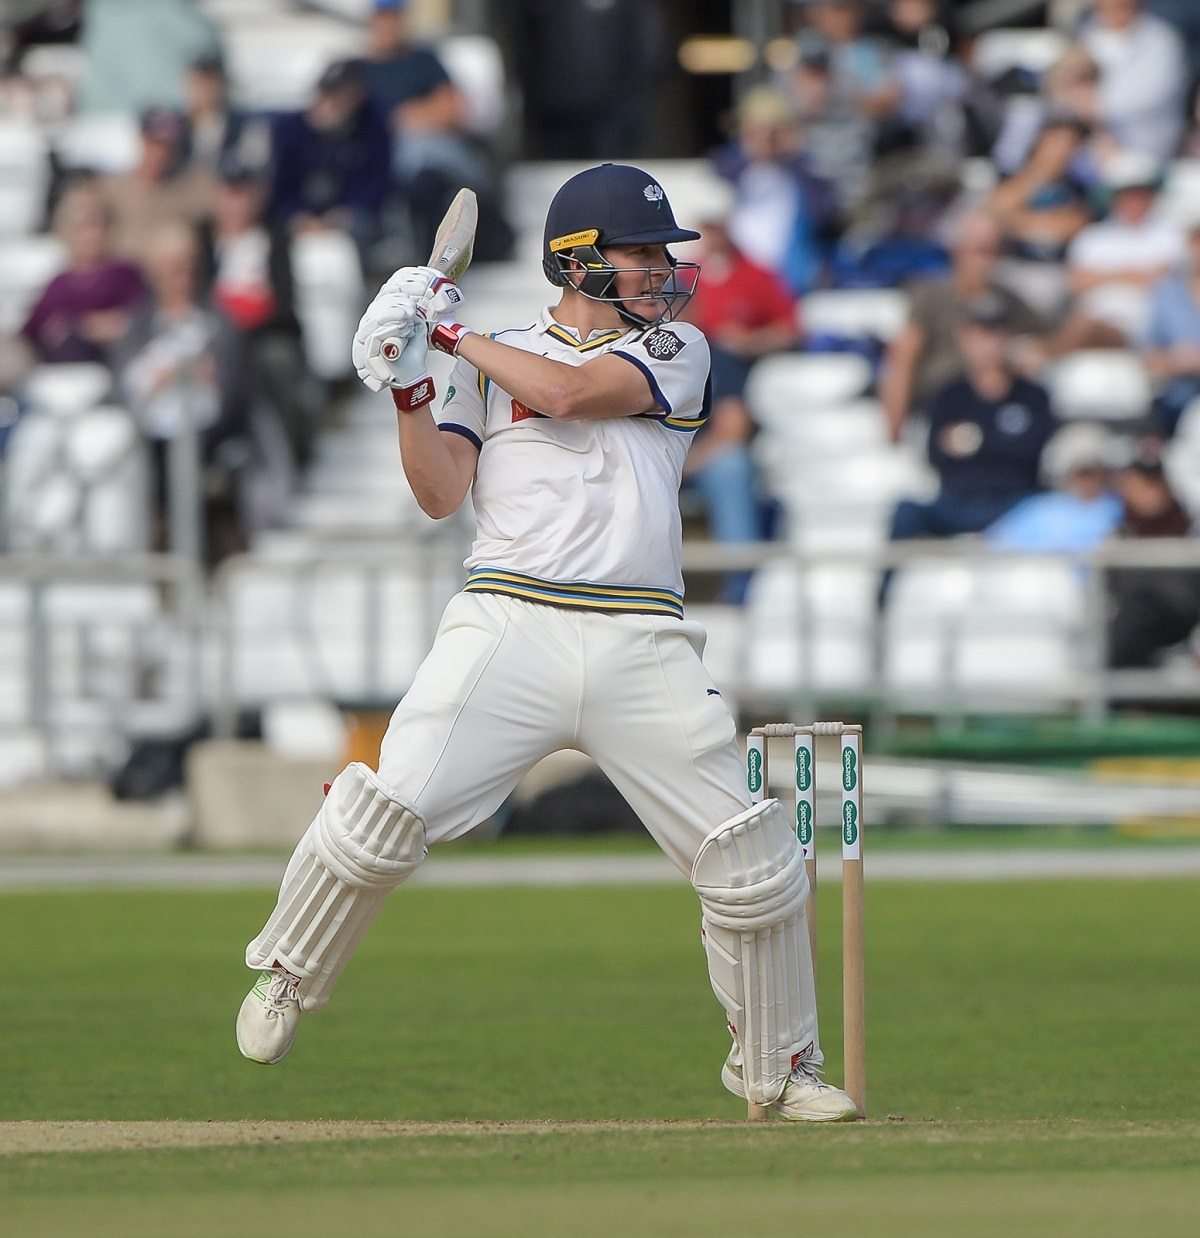 Gary Ballance has signed a two-year contract extension with Yorkshire